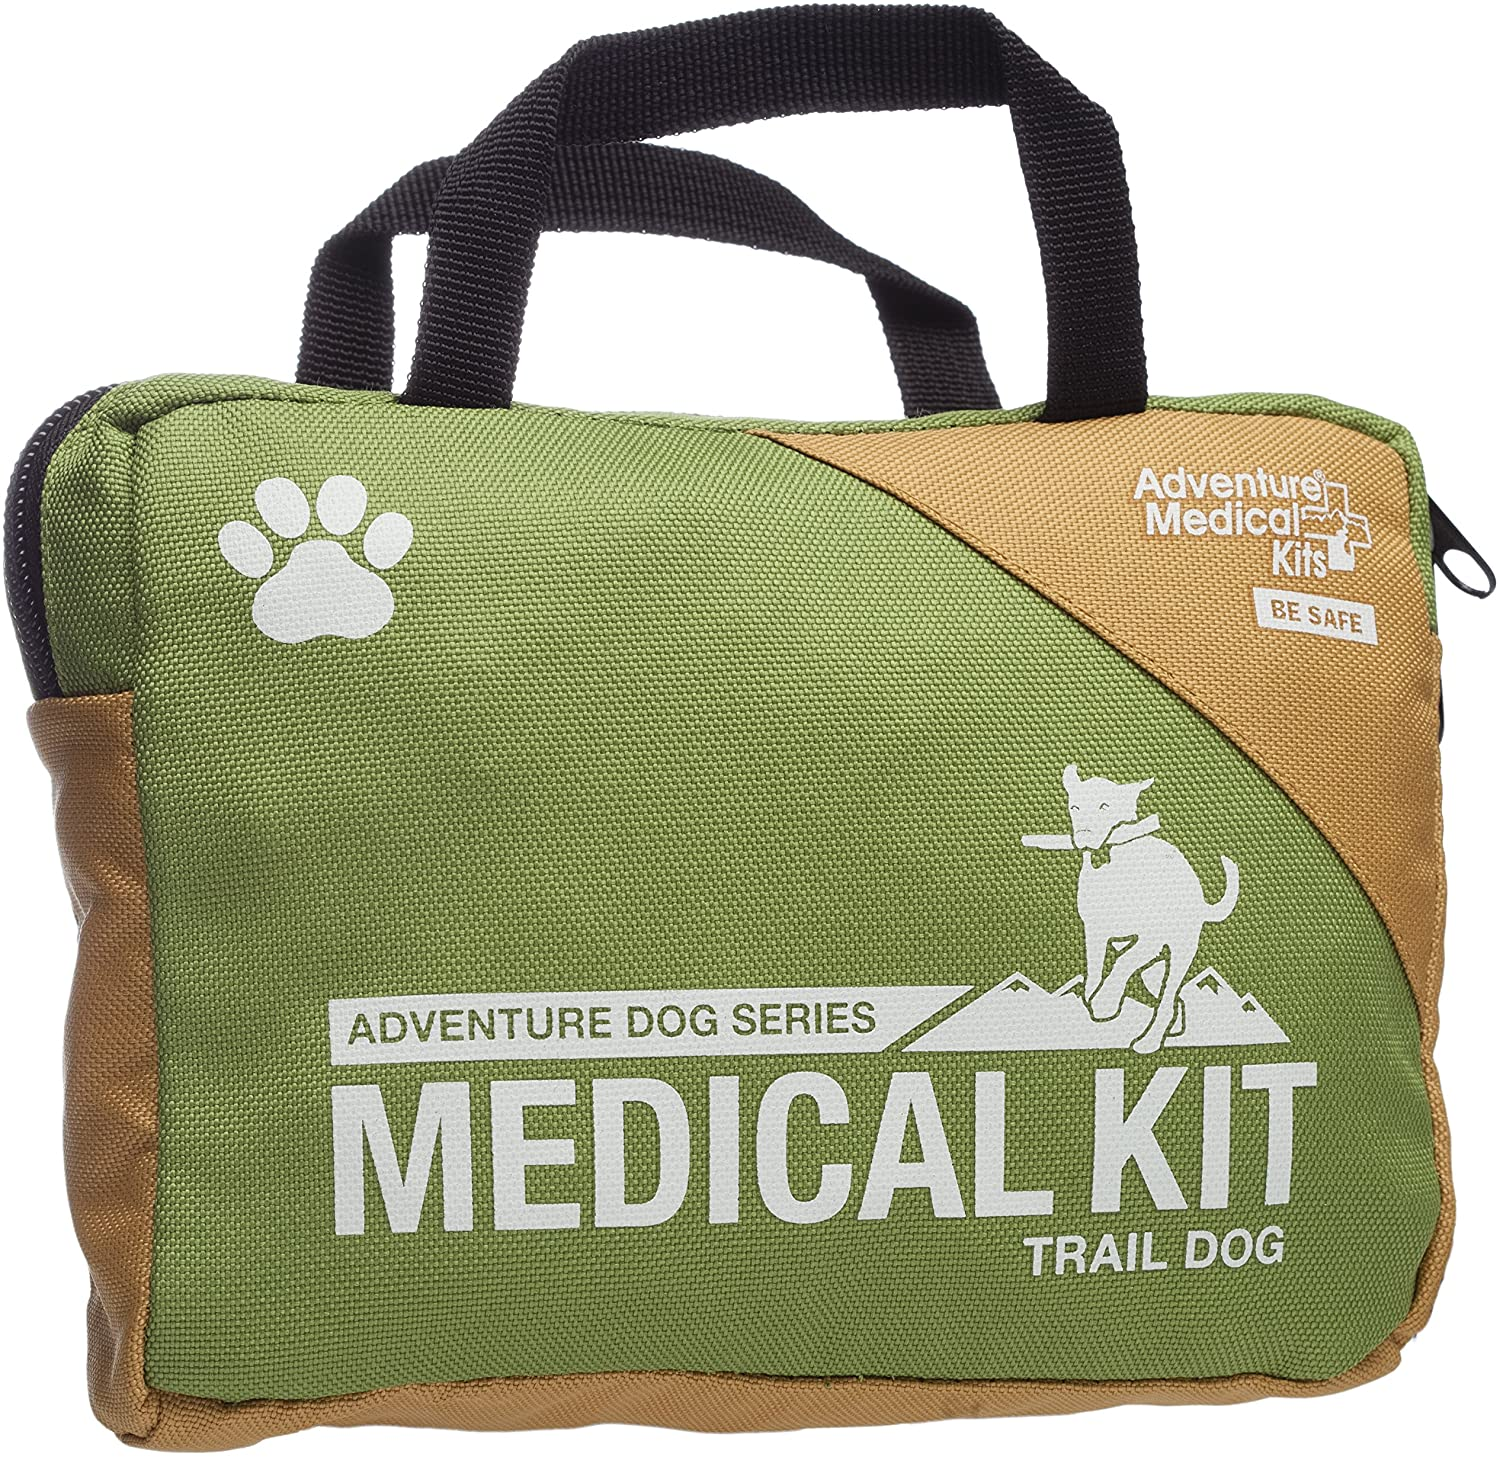 dog first-aid kit